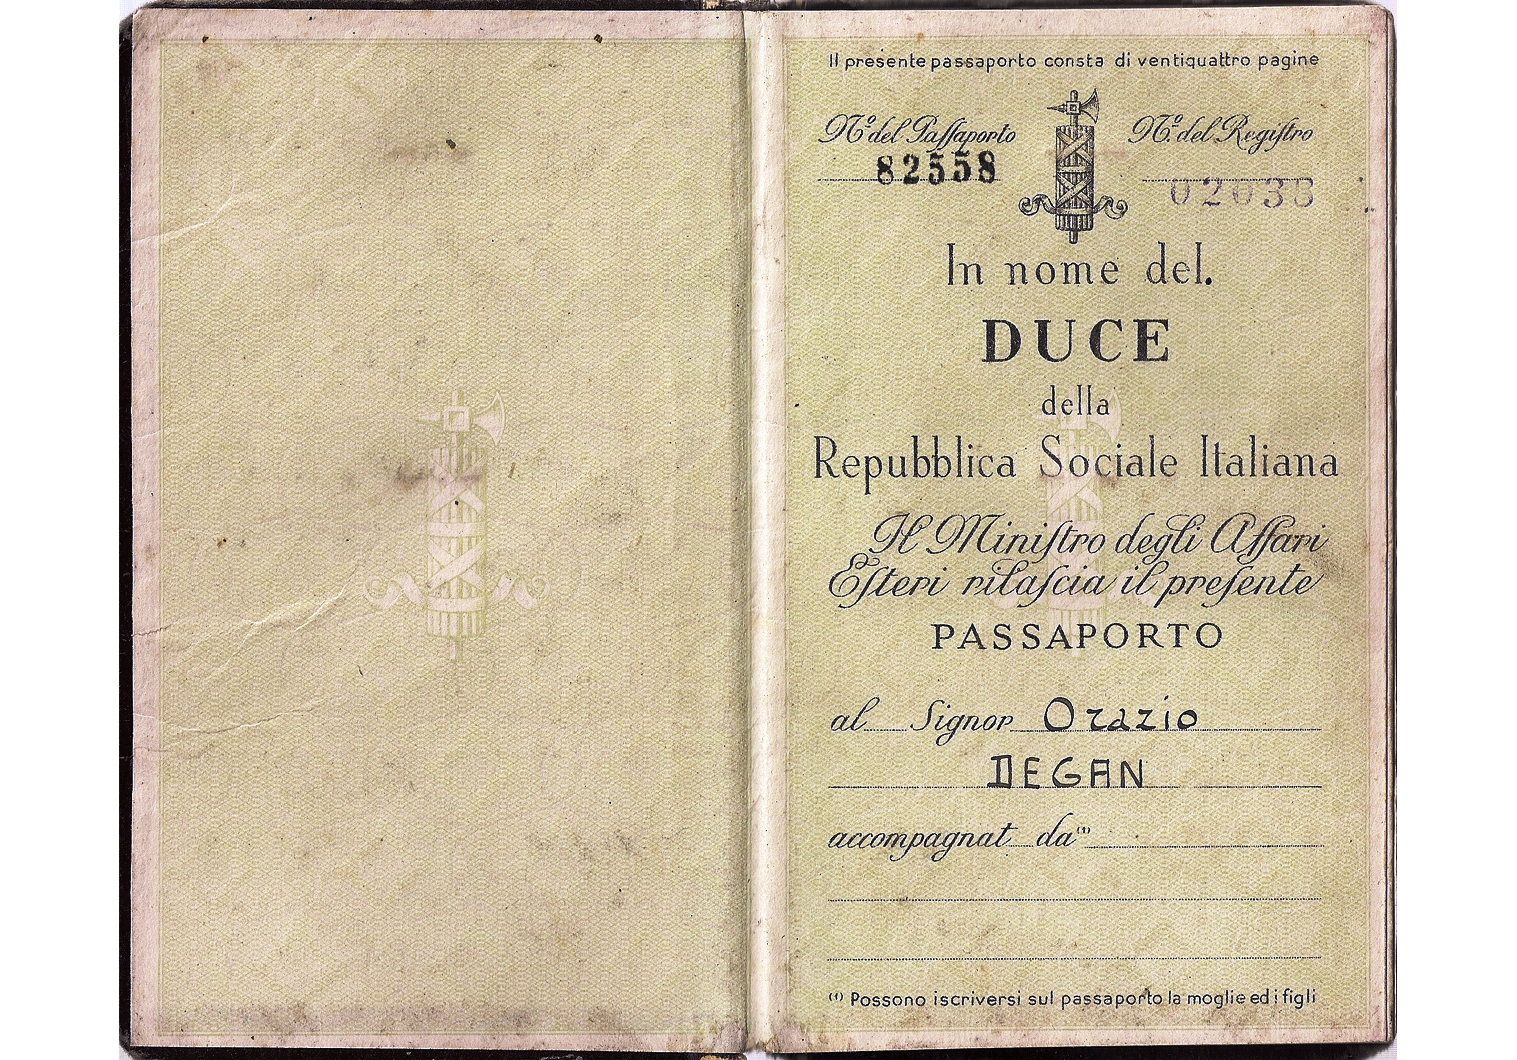 Italian Social Republic passport